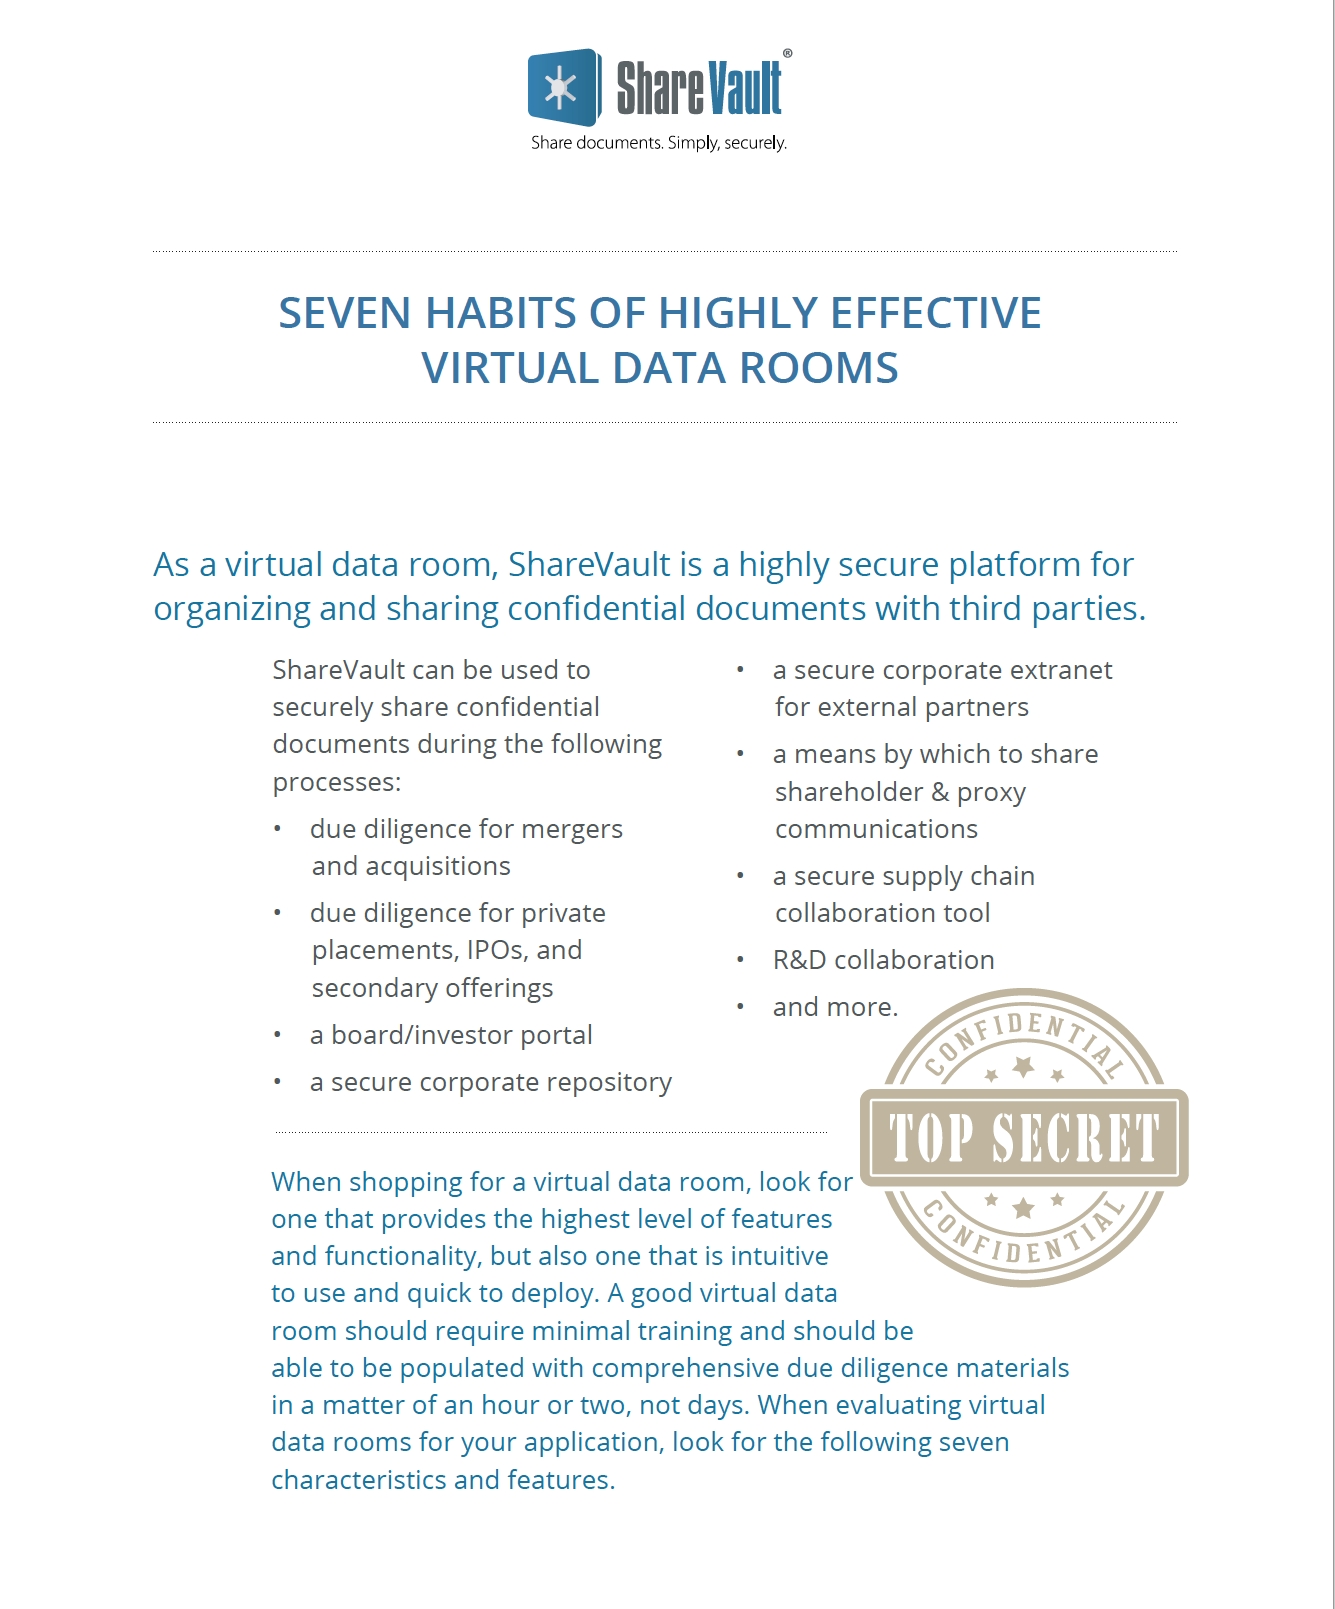 The Seven Habits of Highly Effective Data Rooms